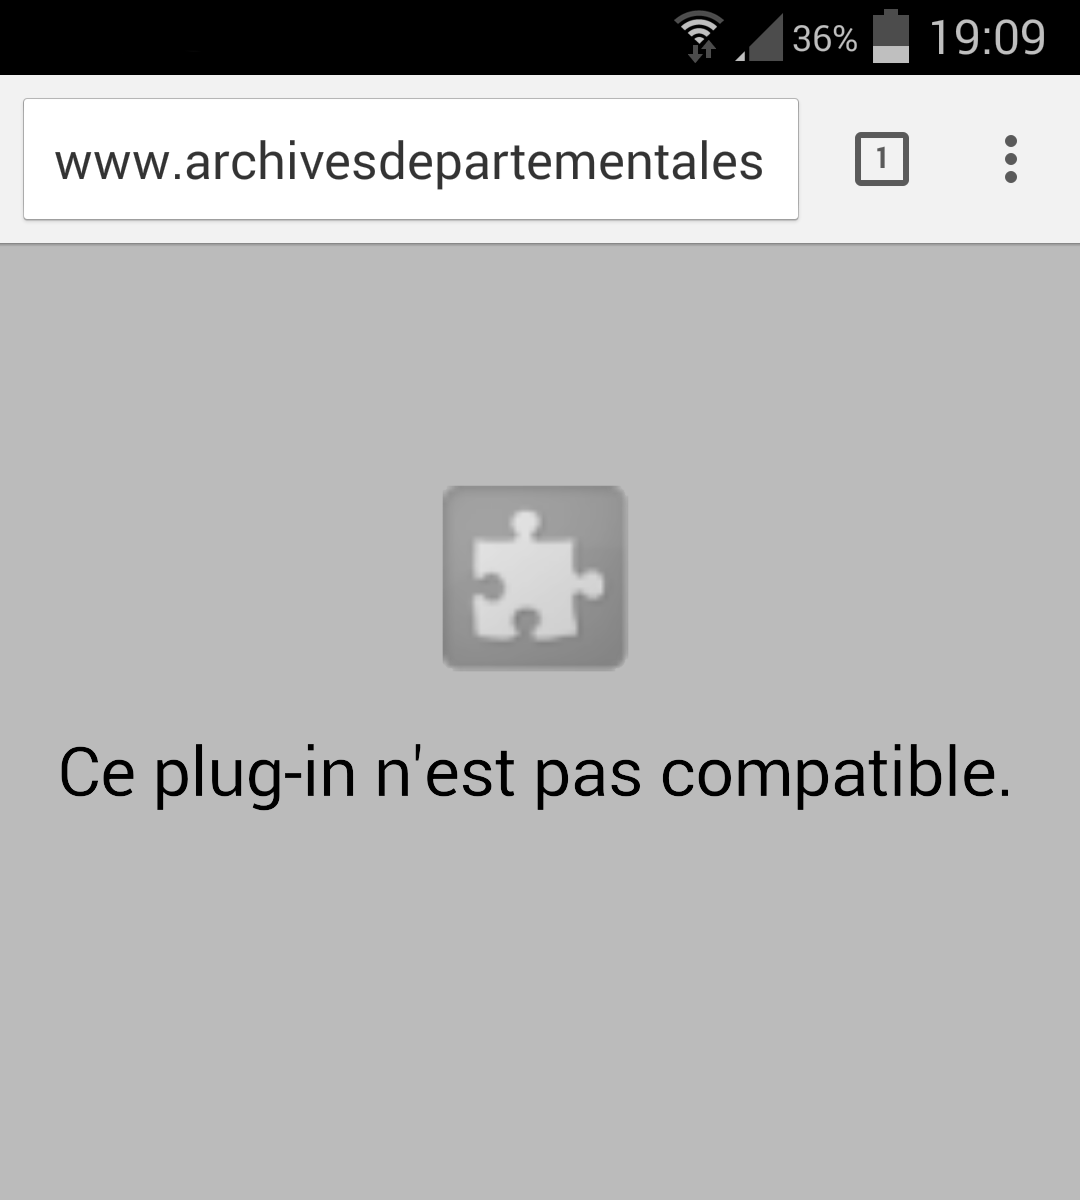 telecharger adobe flash player 11.1 pour tablette android